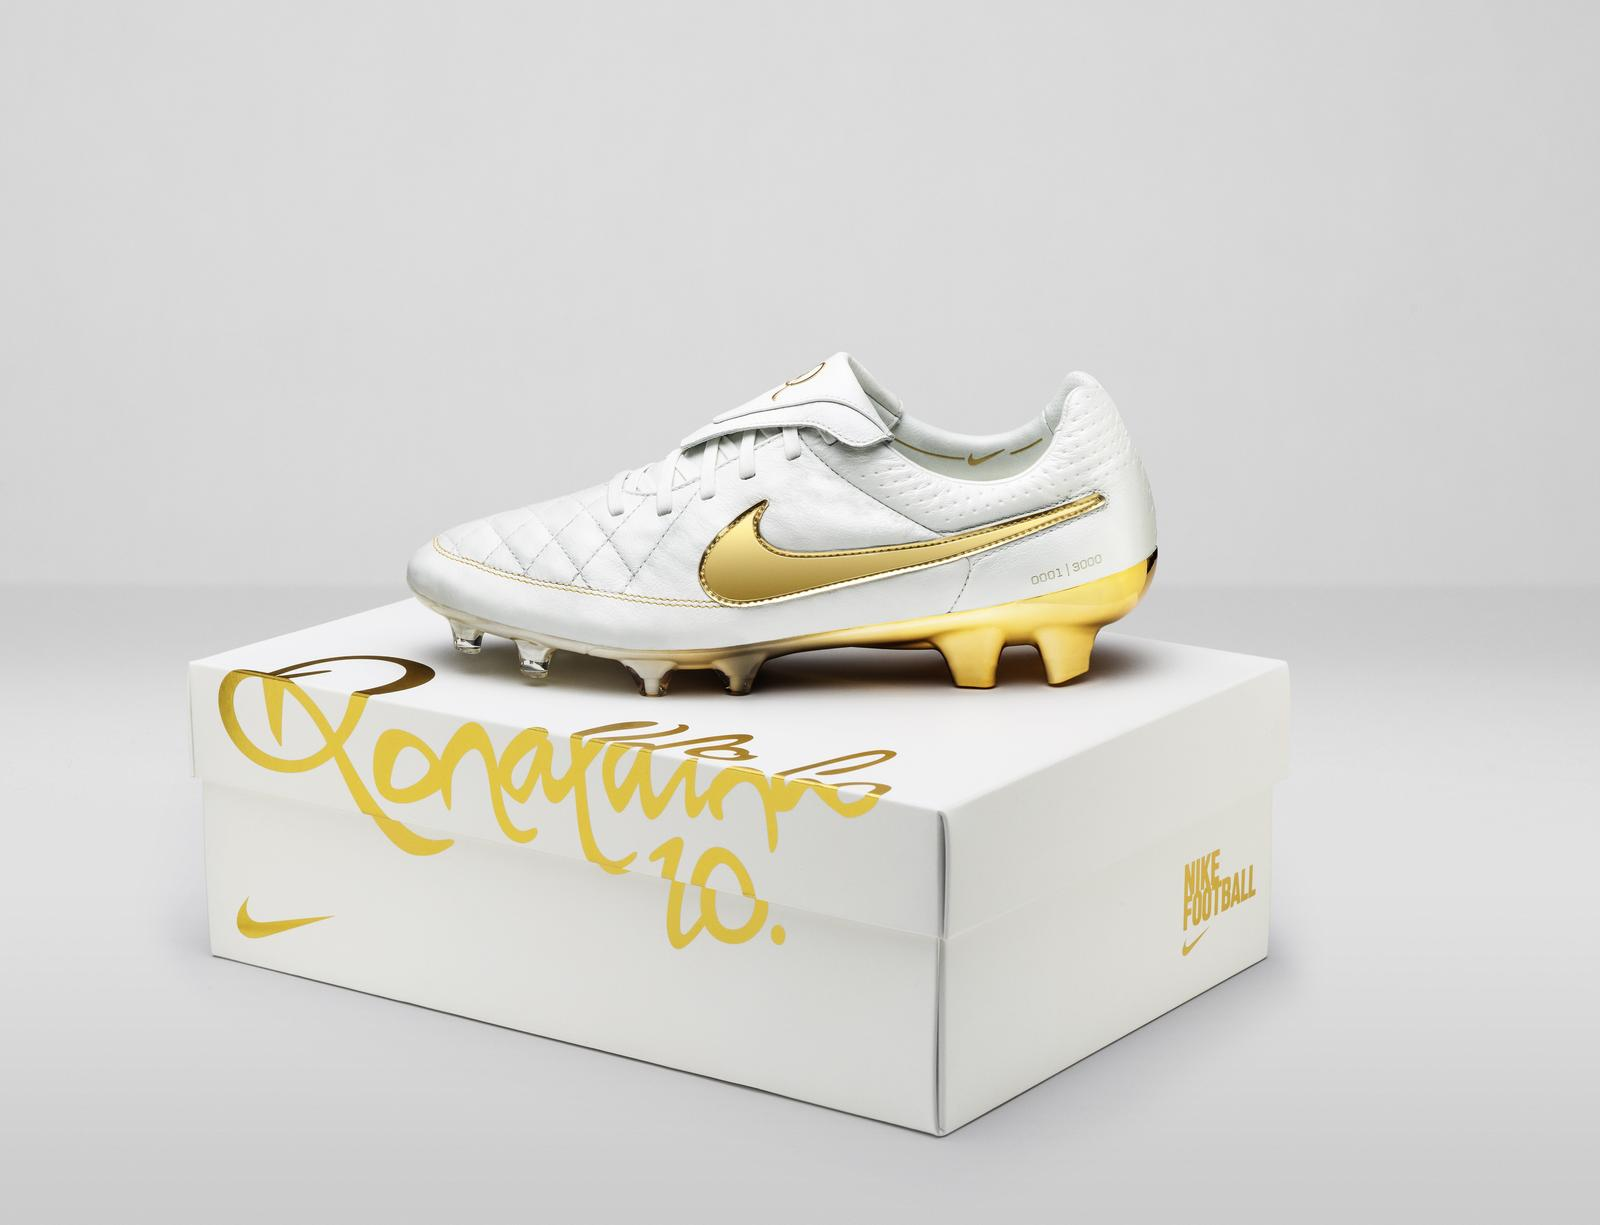 Nike_Football_Ronaldino_Tiempo_Gold_BOX_hero_native_1600.jpg?1437421921